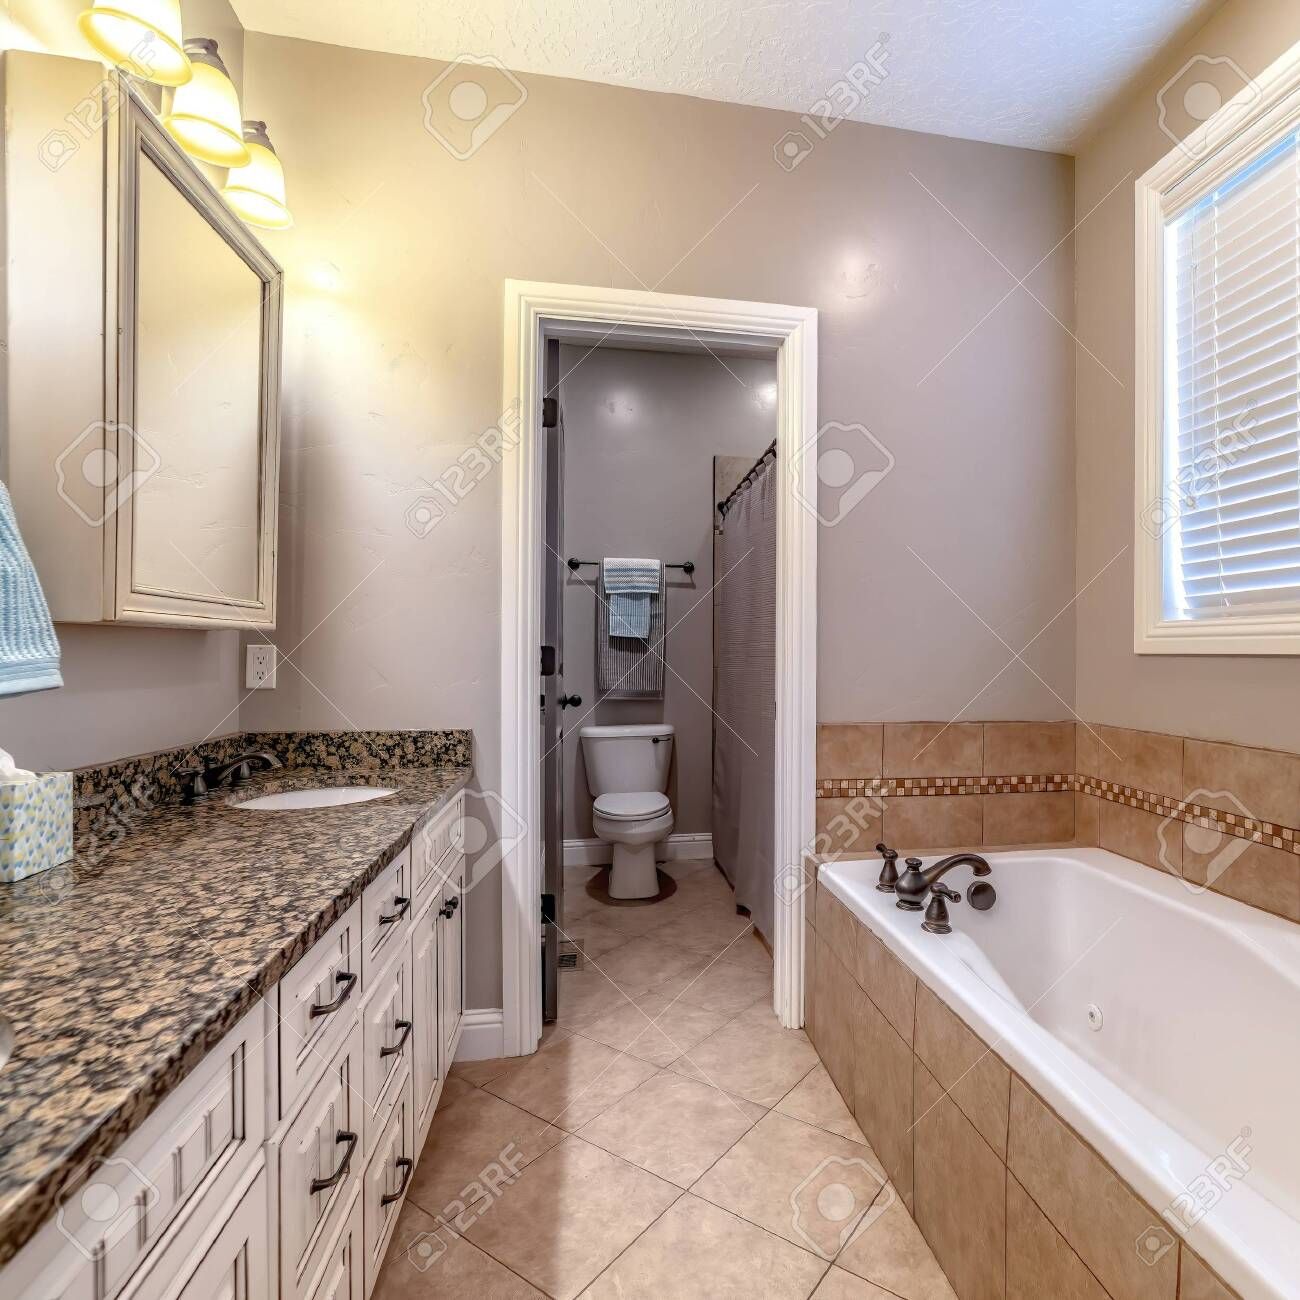 Square Bathroom Interior With Bathtub Double Sink Vanity Mirror Stock Photo Picture And Royalty Free Image Image 149197296